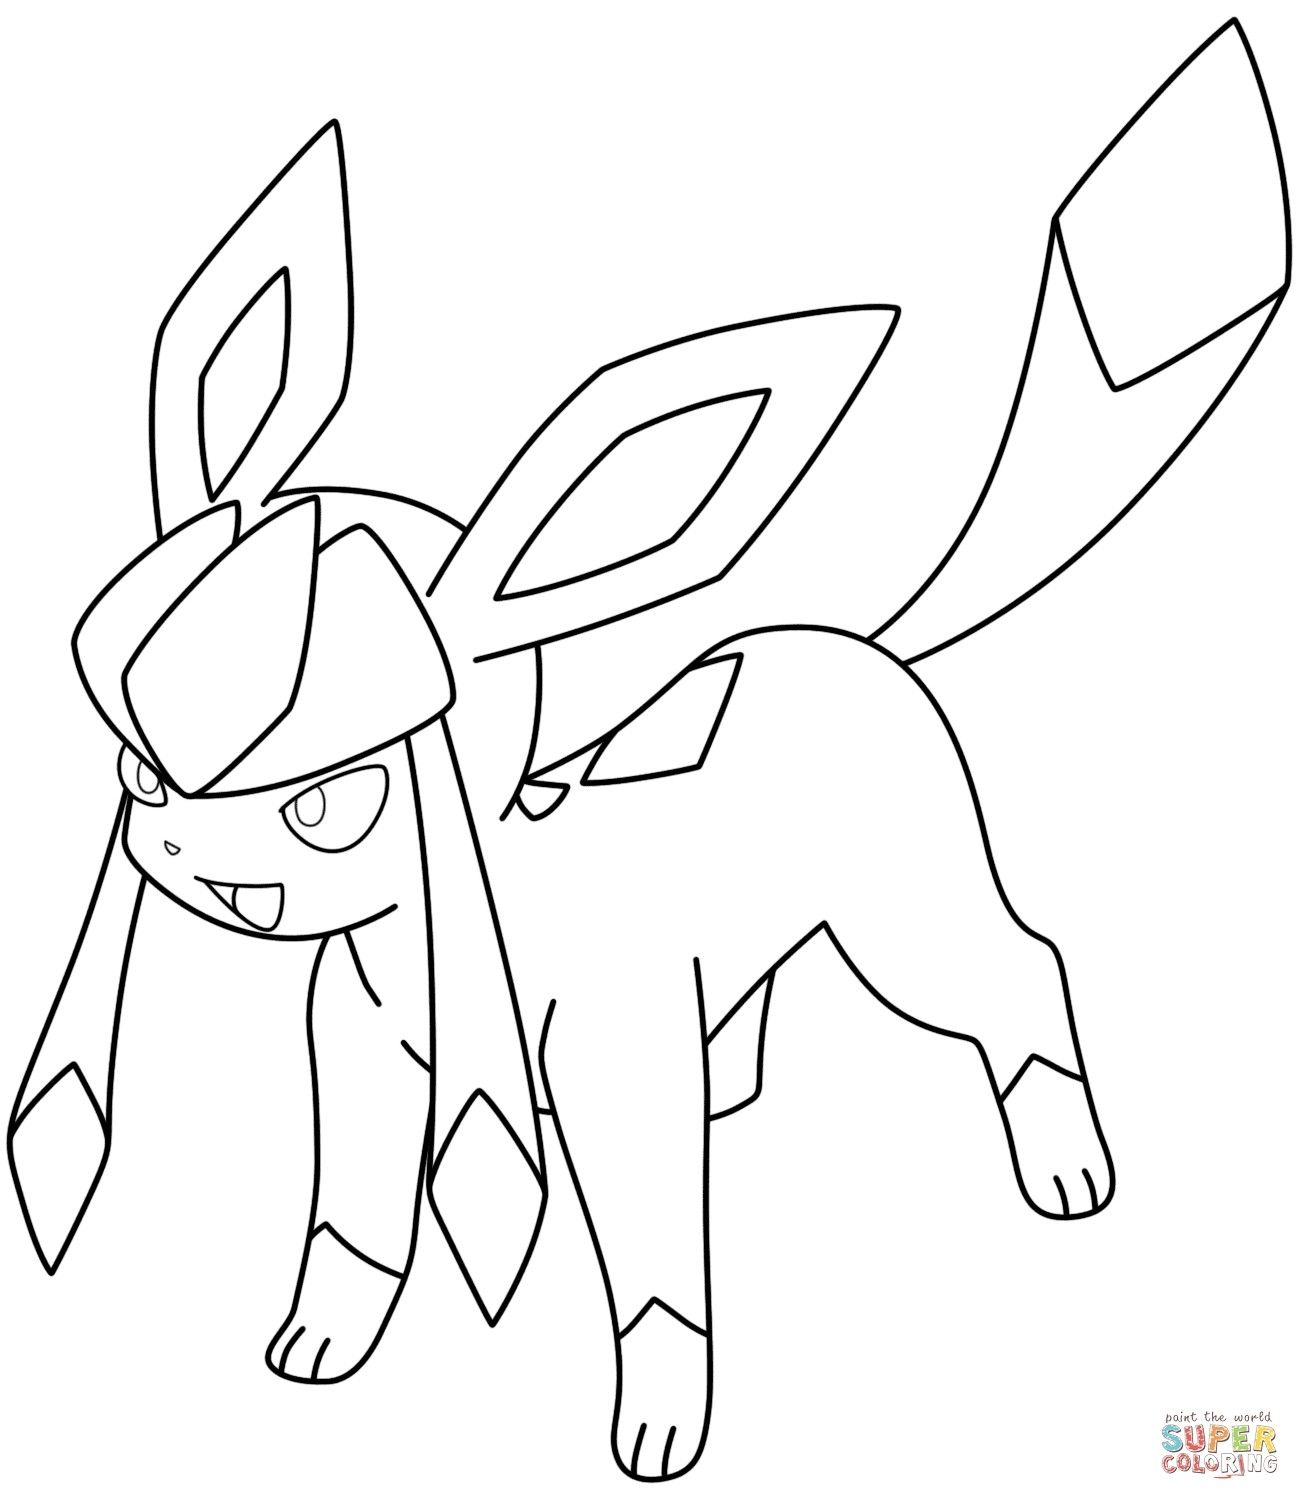 Pokemon Glaceon Coloring Pages From The Thousands Of Images On